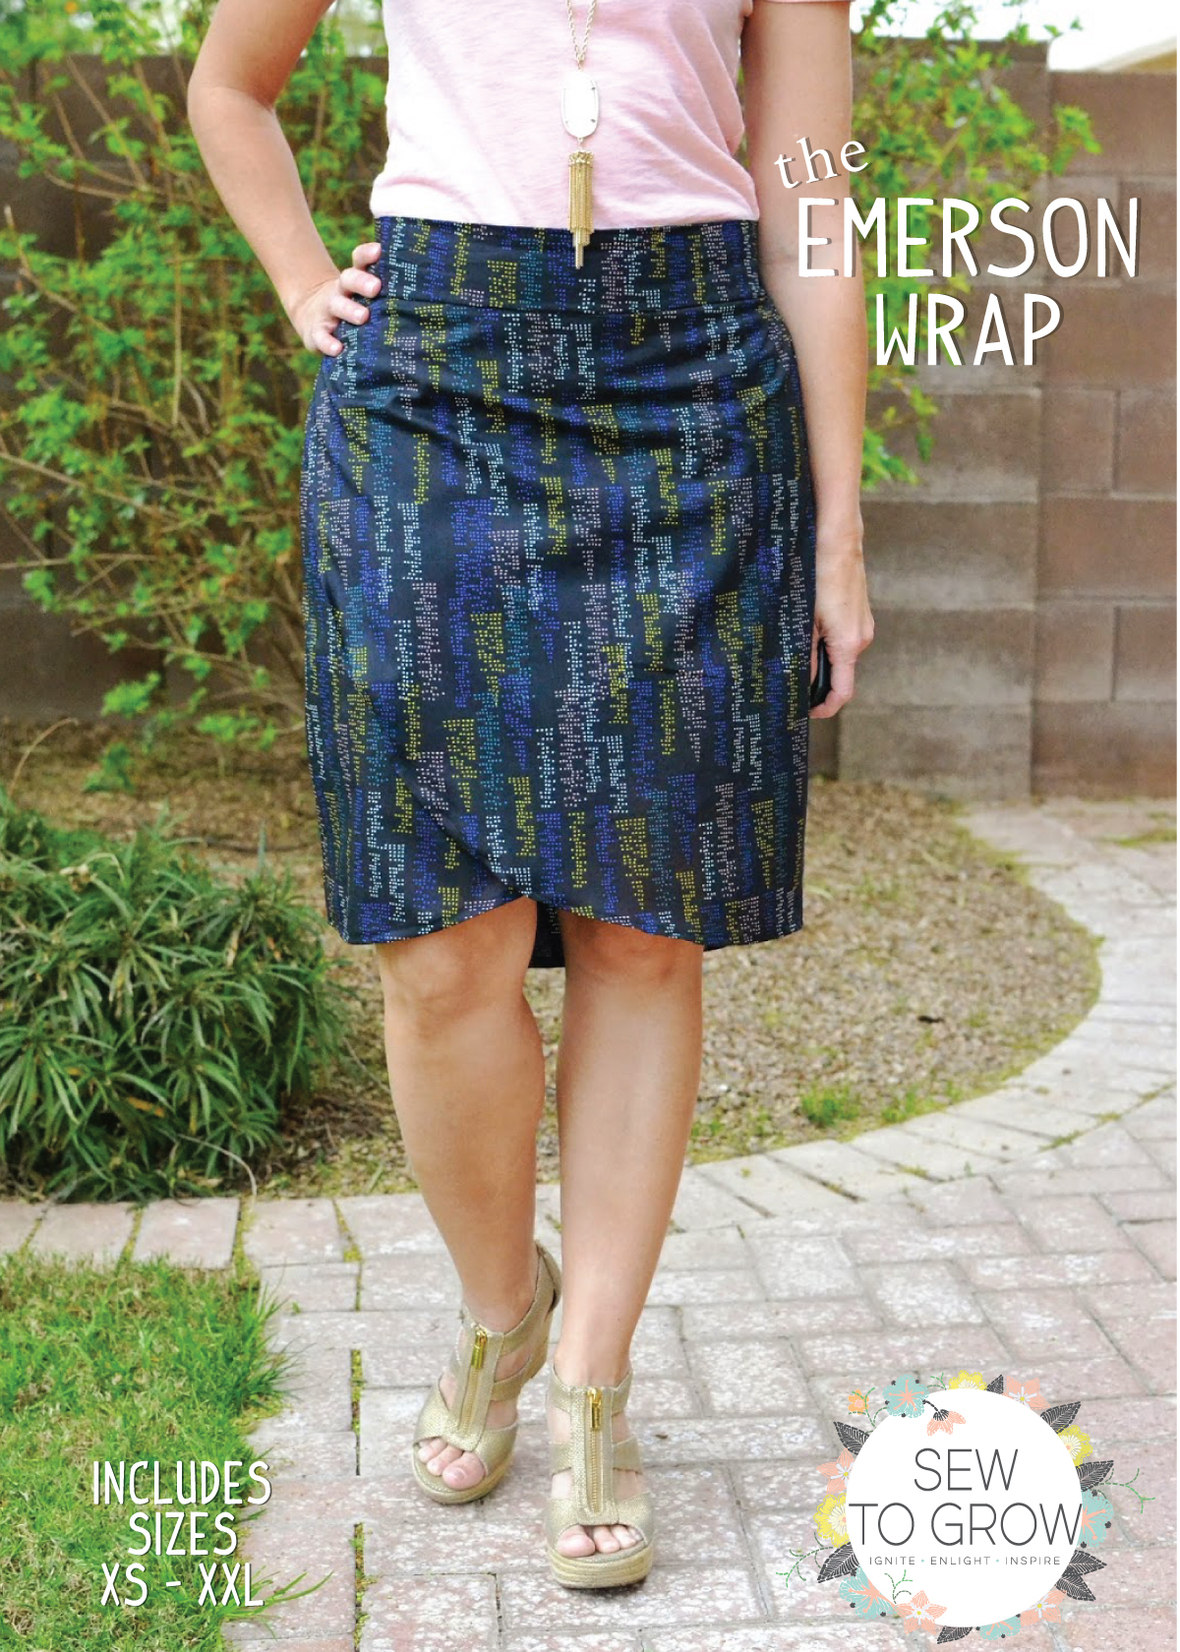 sew to grow- emerson wrap